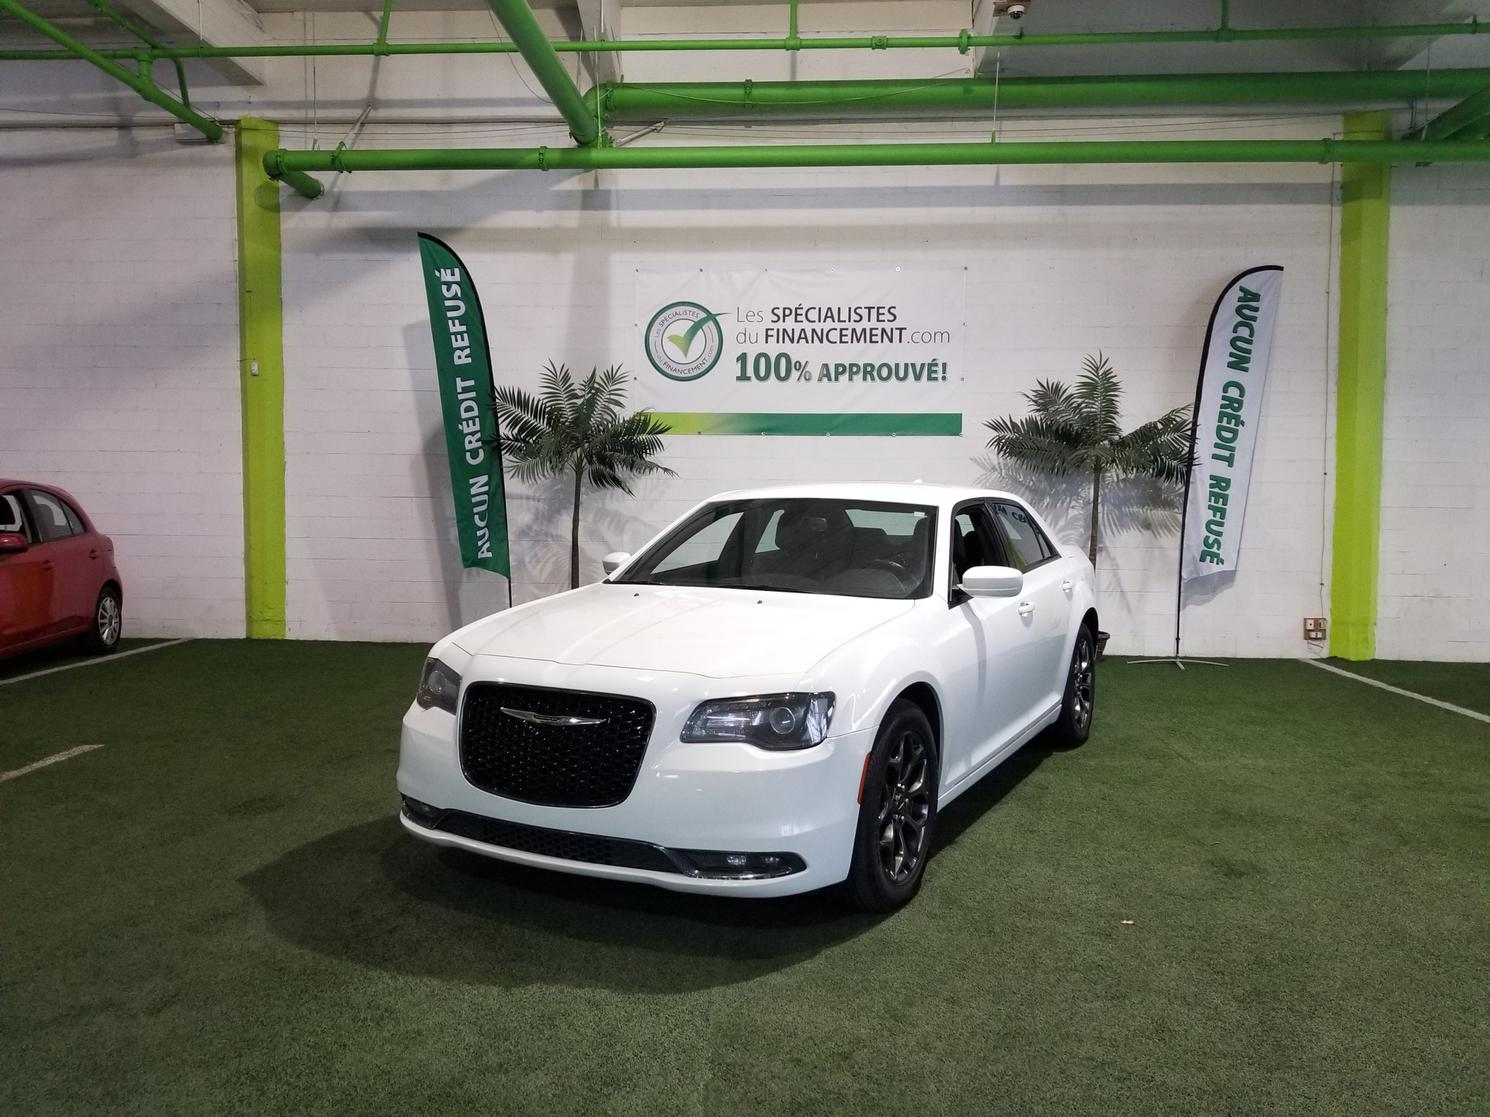 Chrysler 300 S 2018 #3500-12